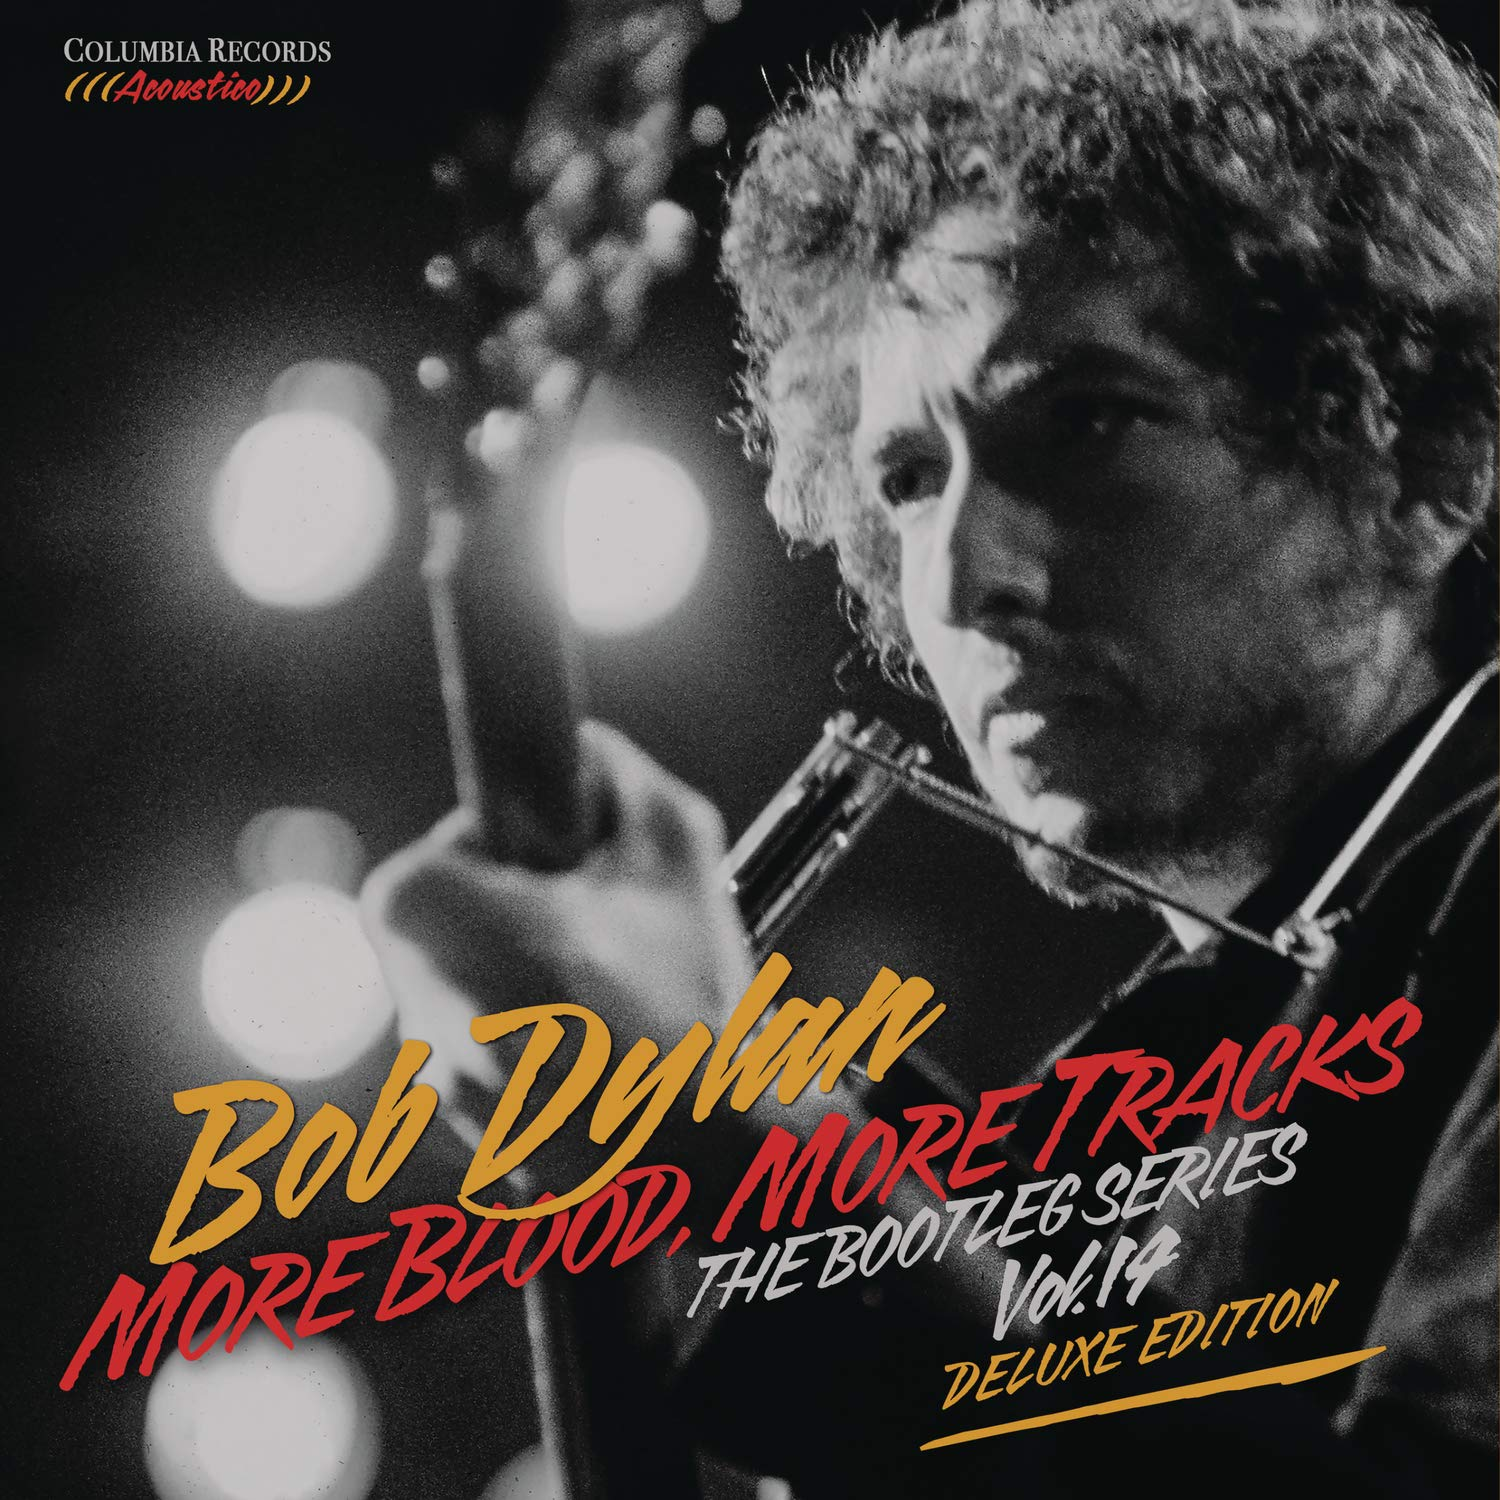 Check Out Bob DylanProducts On Amazon!